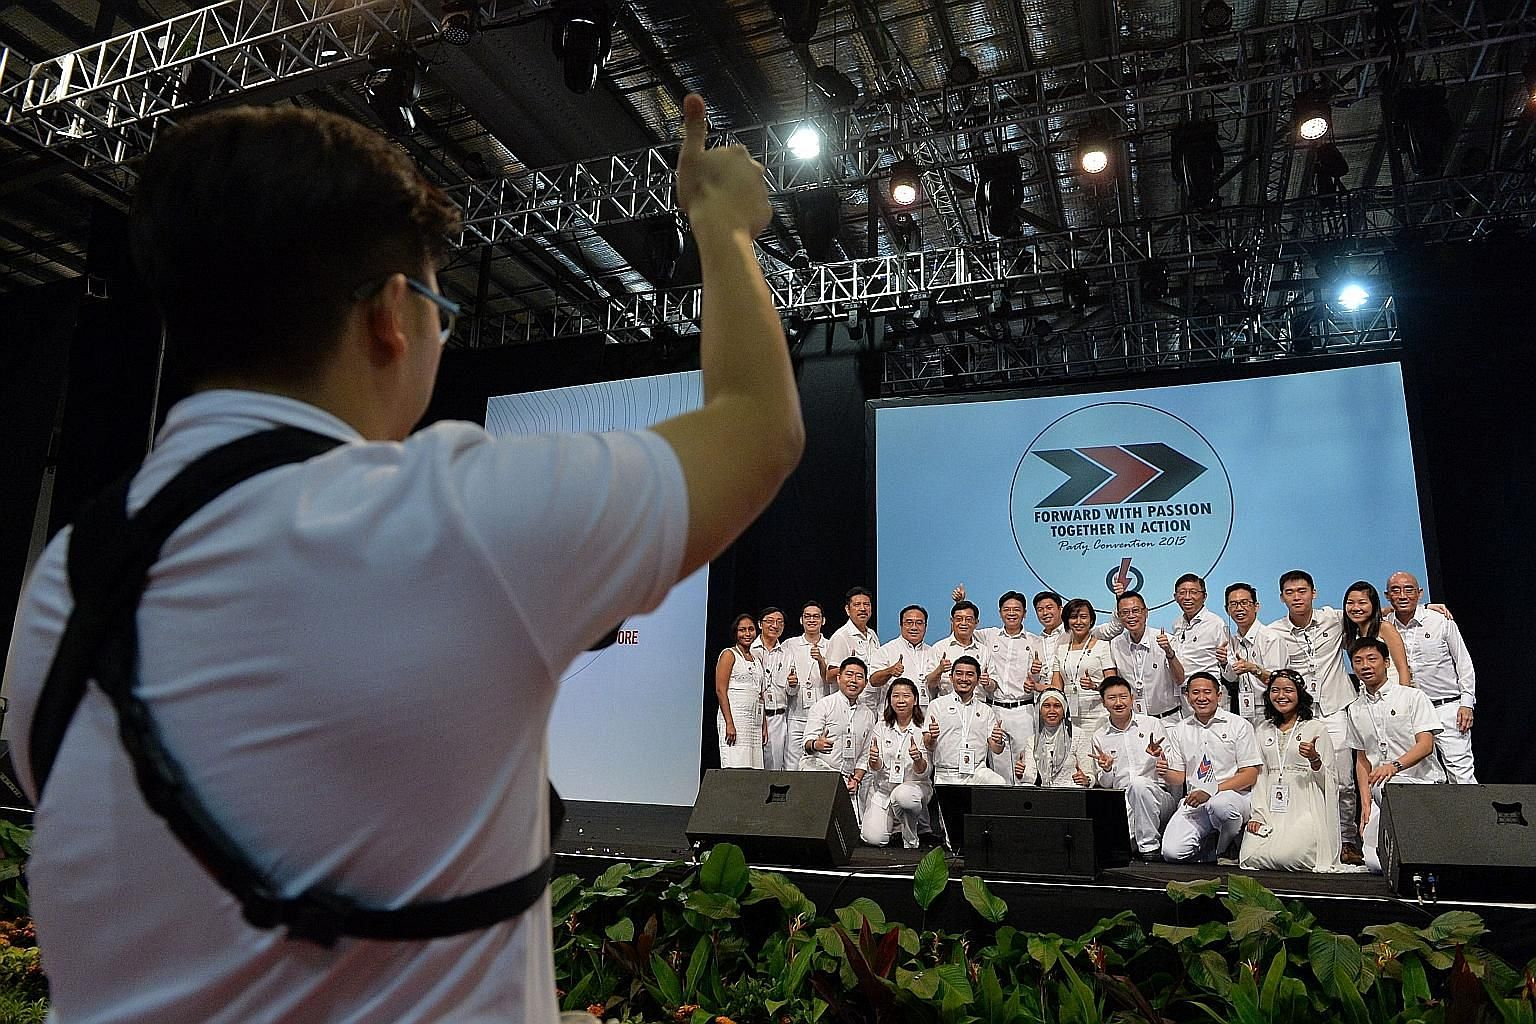 Yesterday's meeting was attended by 1,500 activists. PM Lee urged them to convince people about what the PAP stands for.